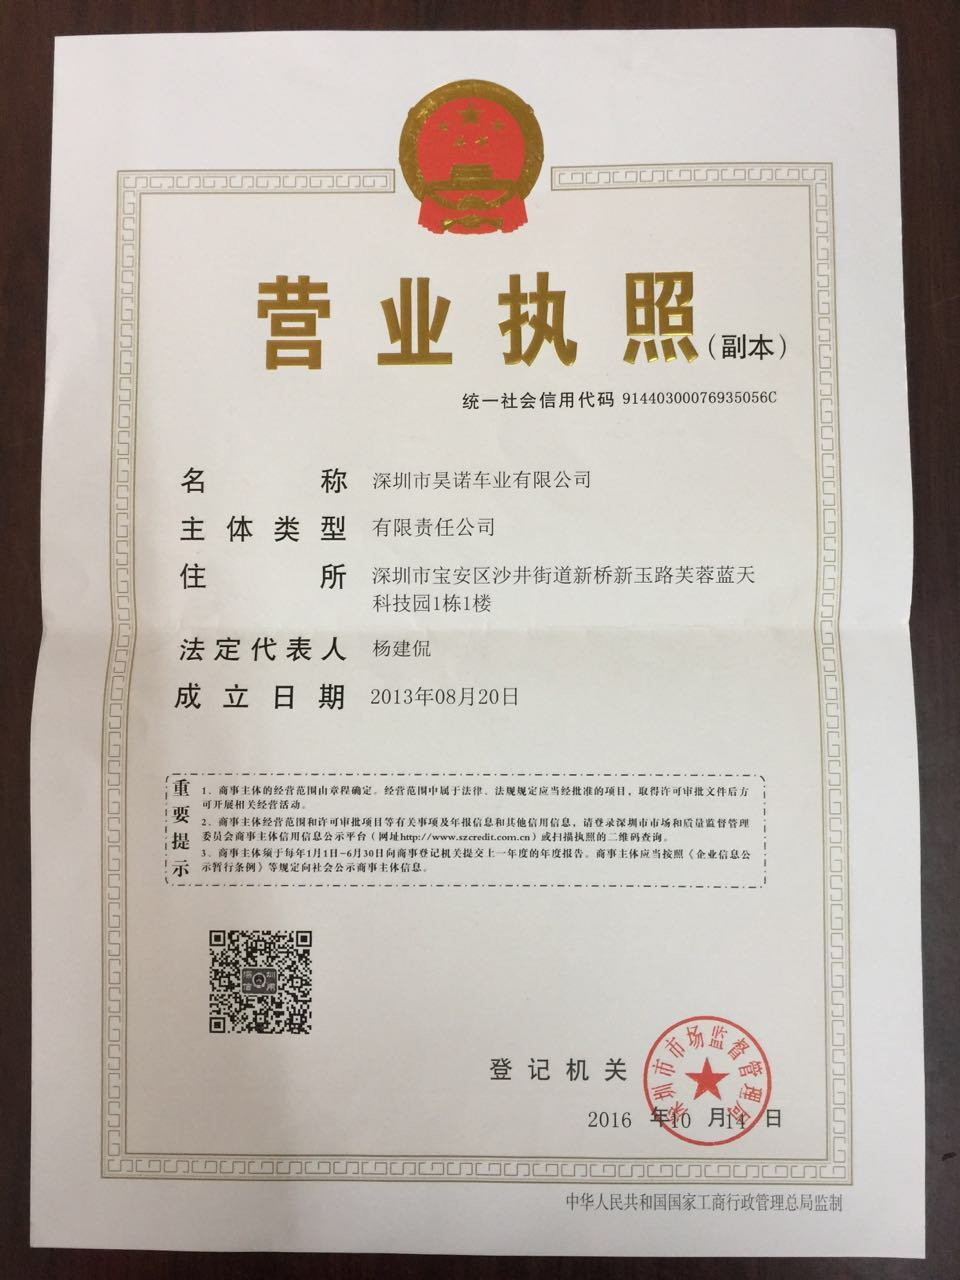 Enterprise Business License